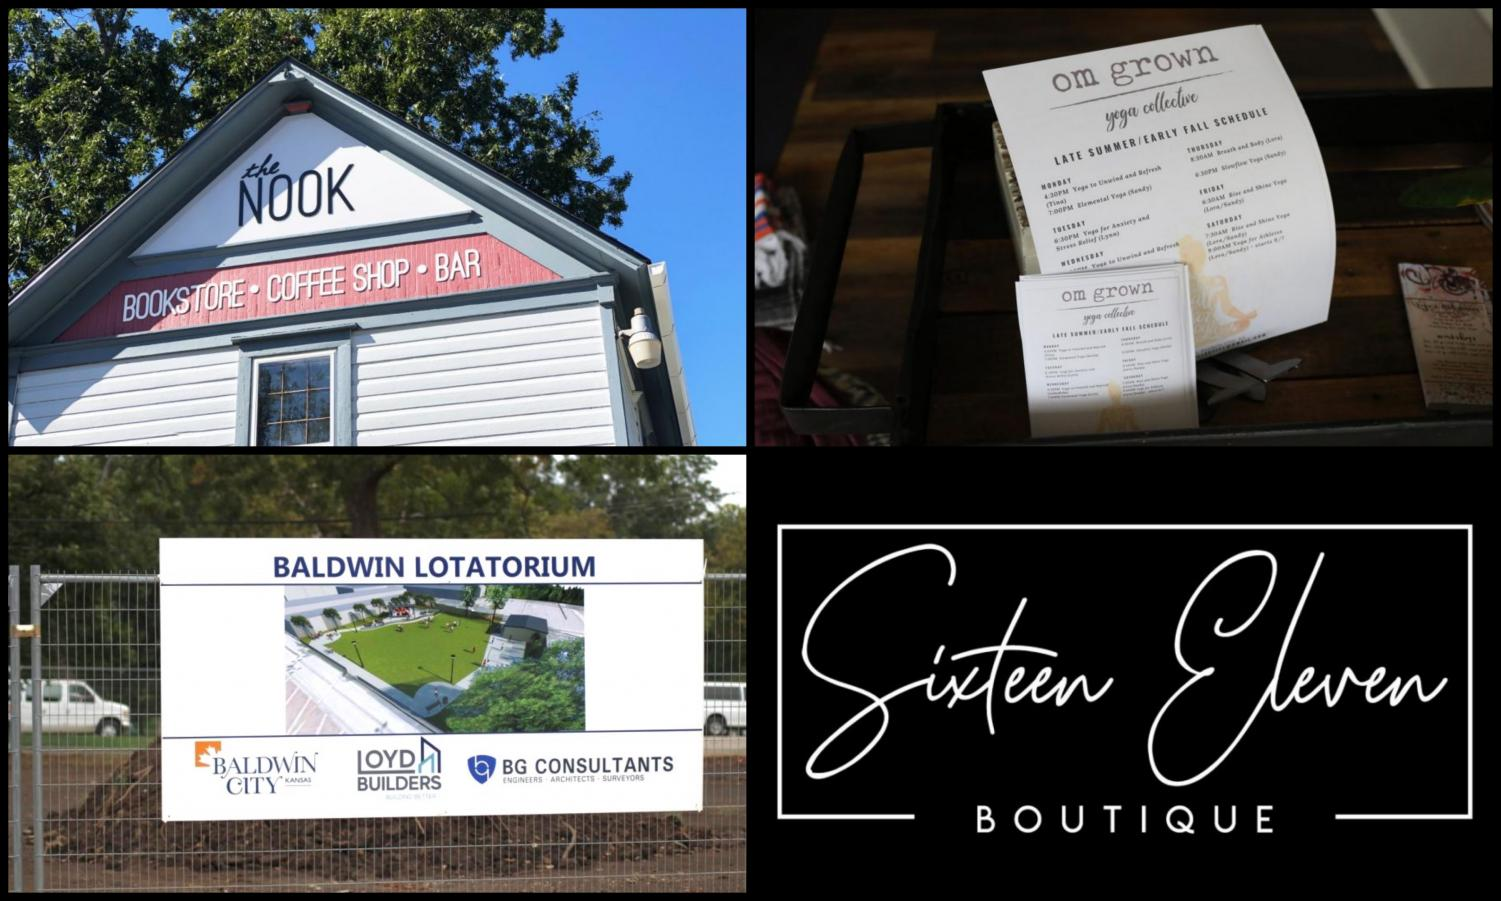 Baldwin City expands with new local businesses. (top left to right) The Nook offers coffee, alcoholic beverages and books. Om Grown provides yoga classes to community members and student athletes. Baldwin Lotatorium will provide Baldwin City a space for local events in the near future. Sixteen Eleven Boutique sells clothing and jewelry and is owned by Kristin Walters.